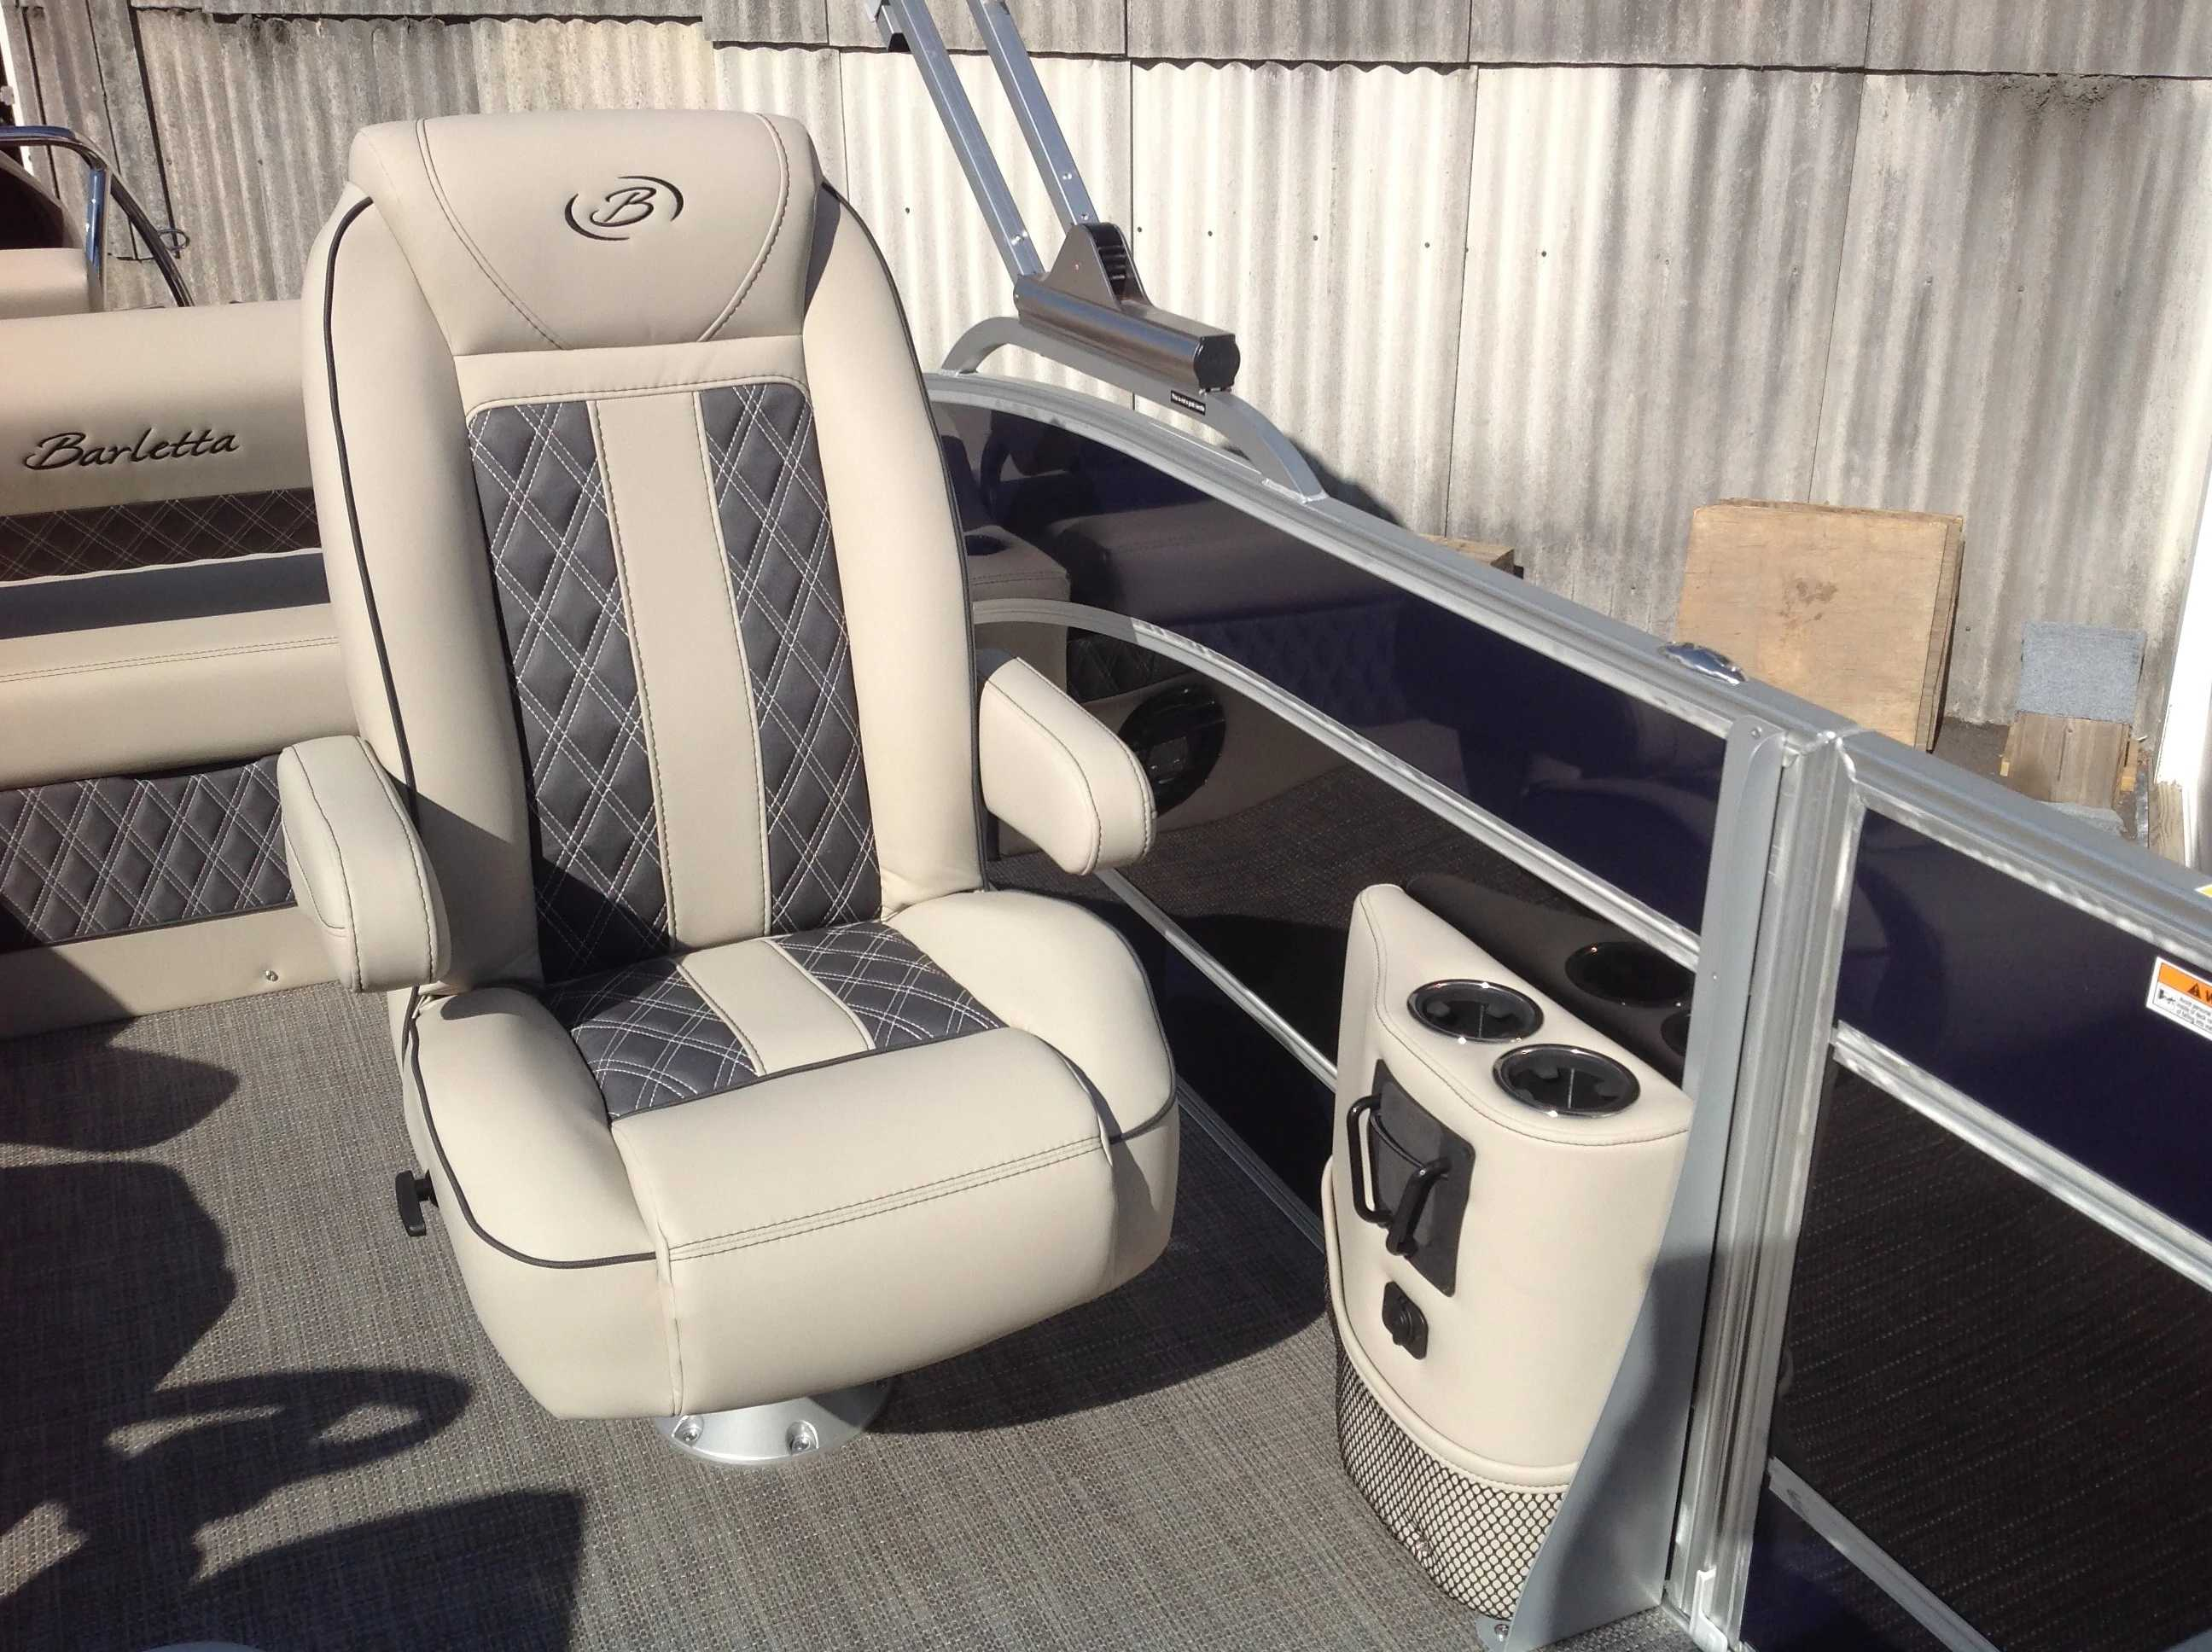 2021 Barletta boat for sale, model of the boat is L25UC & Image # 10 of 17